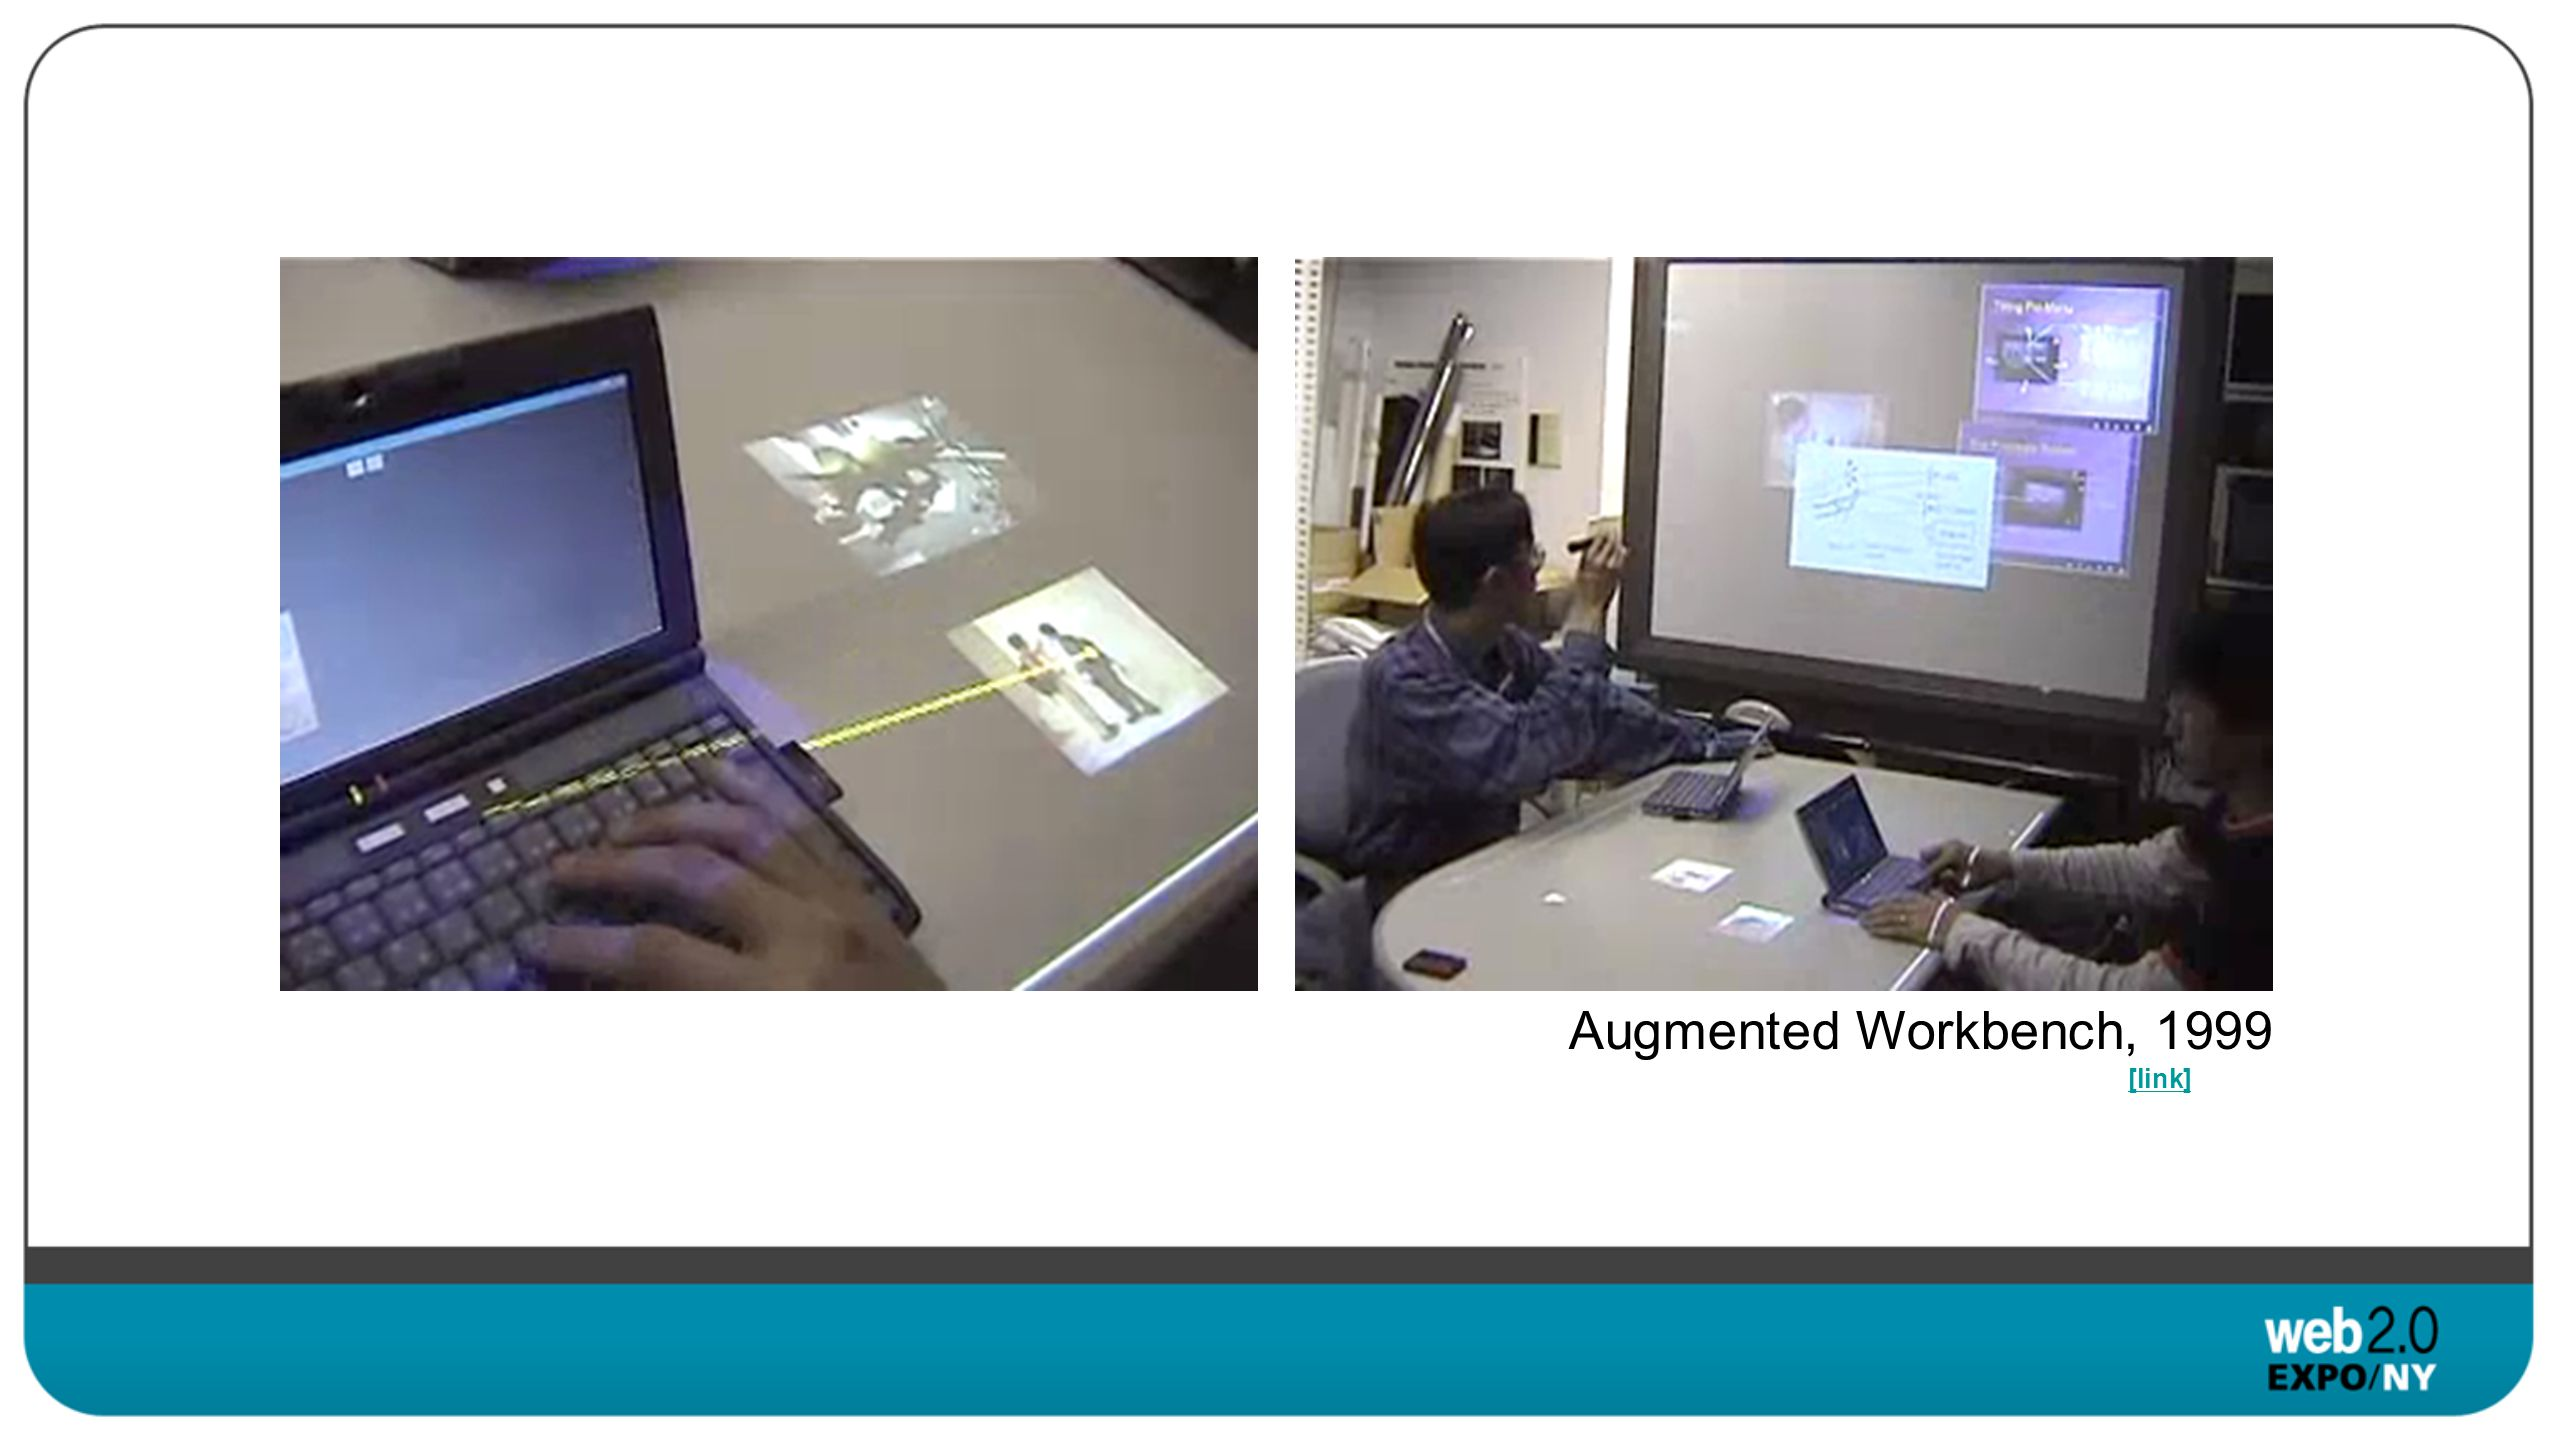 [link] Augmented Workbench, 1999